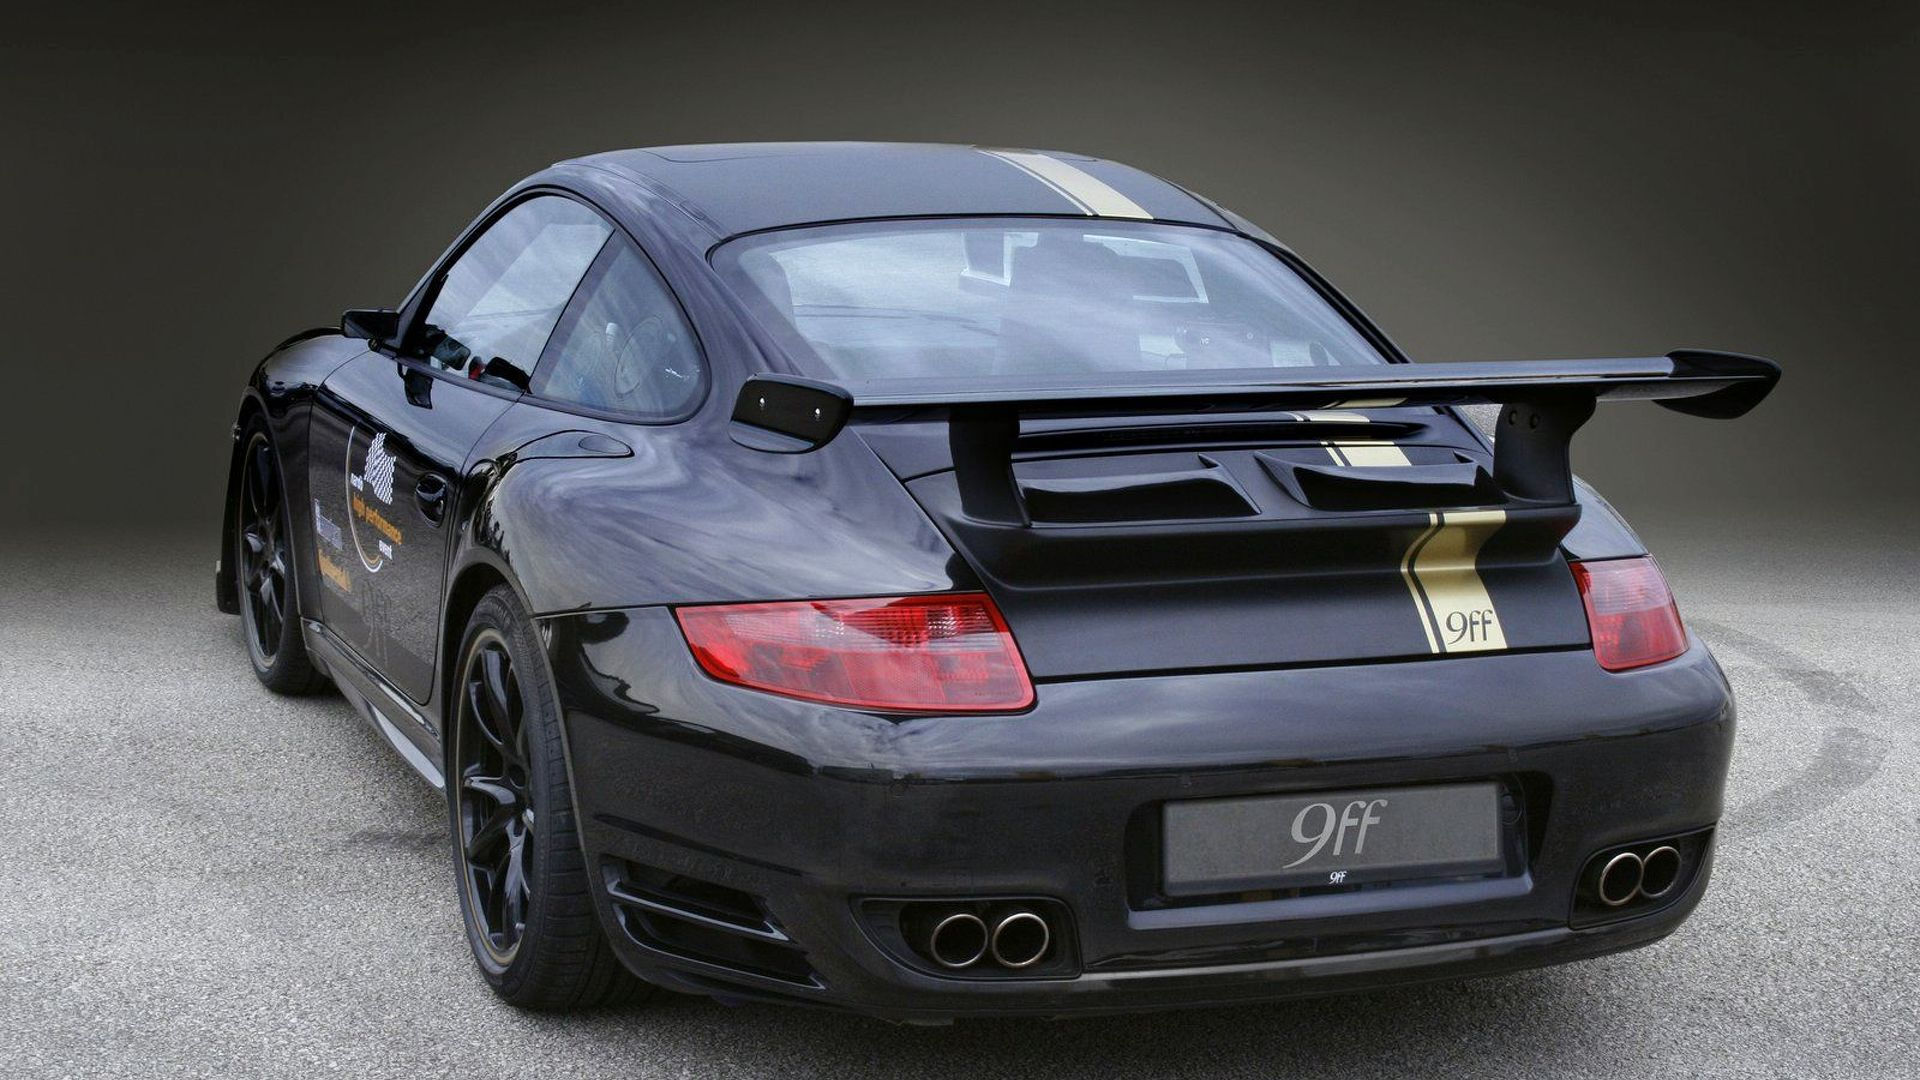 9ff tr 1000 is world 39 s fastest porsche 911 hits 391km h 243mph video. Black Bedroom Furniture Sets. Home Design Ideas